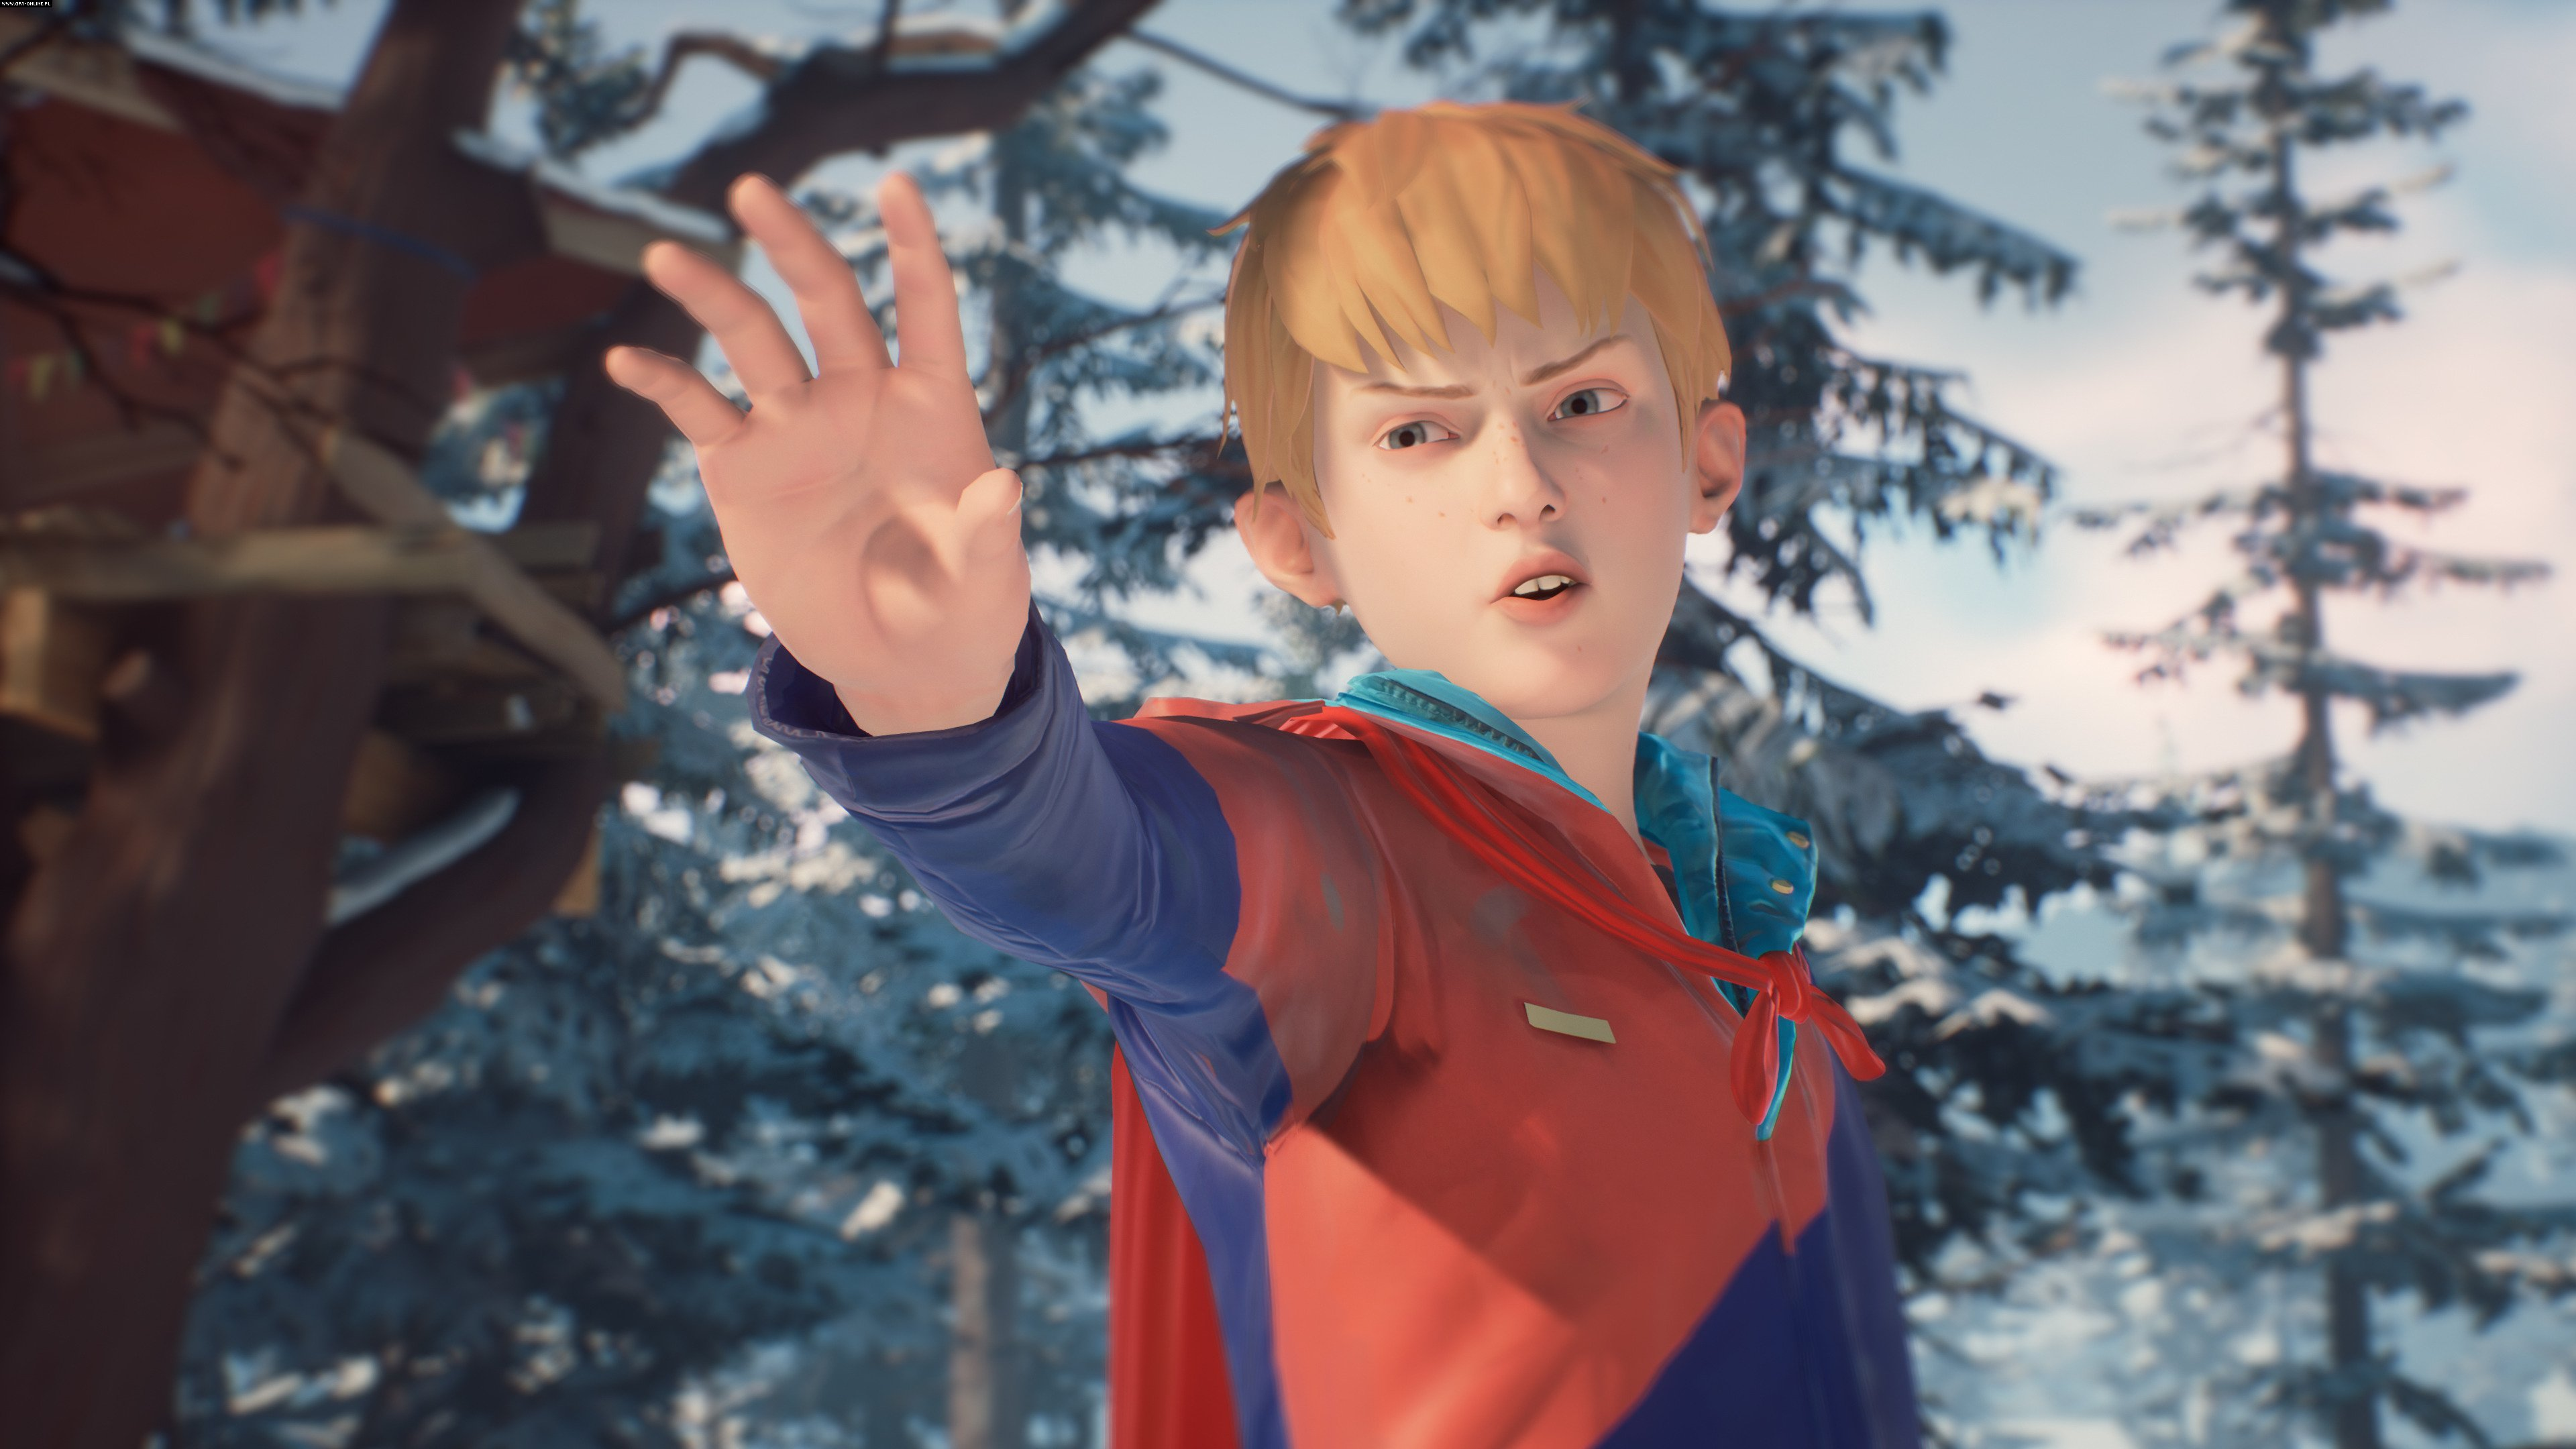 The Awesome Adventures of Captain Spirit PC, XONE, PS4 Games Image 4/5, DONTNOD Entertainment, Square Enix